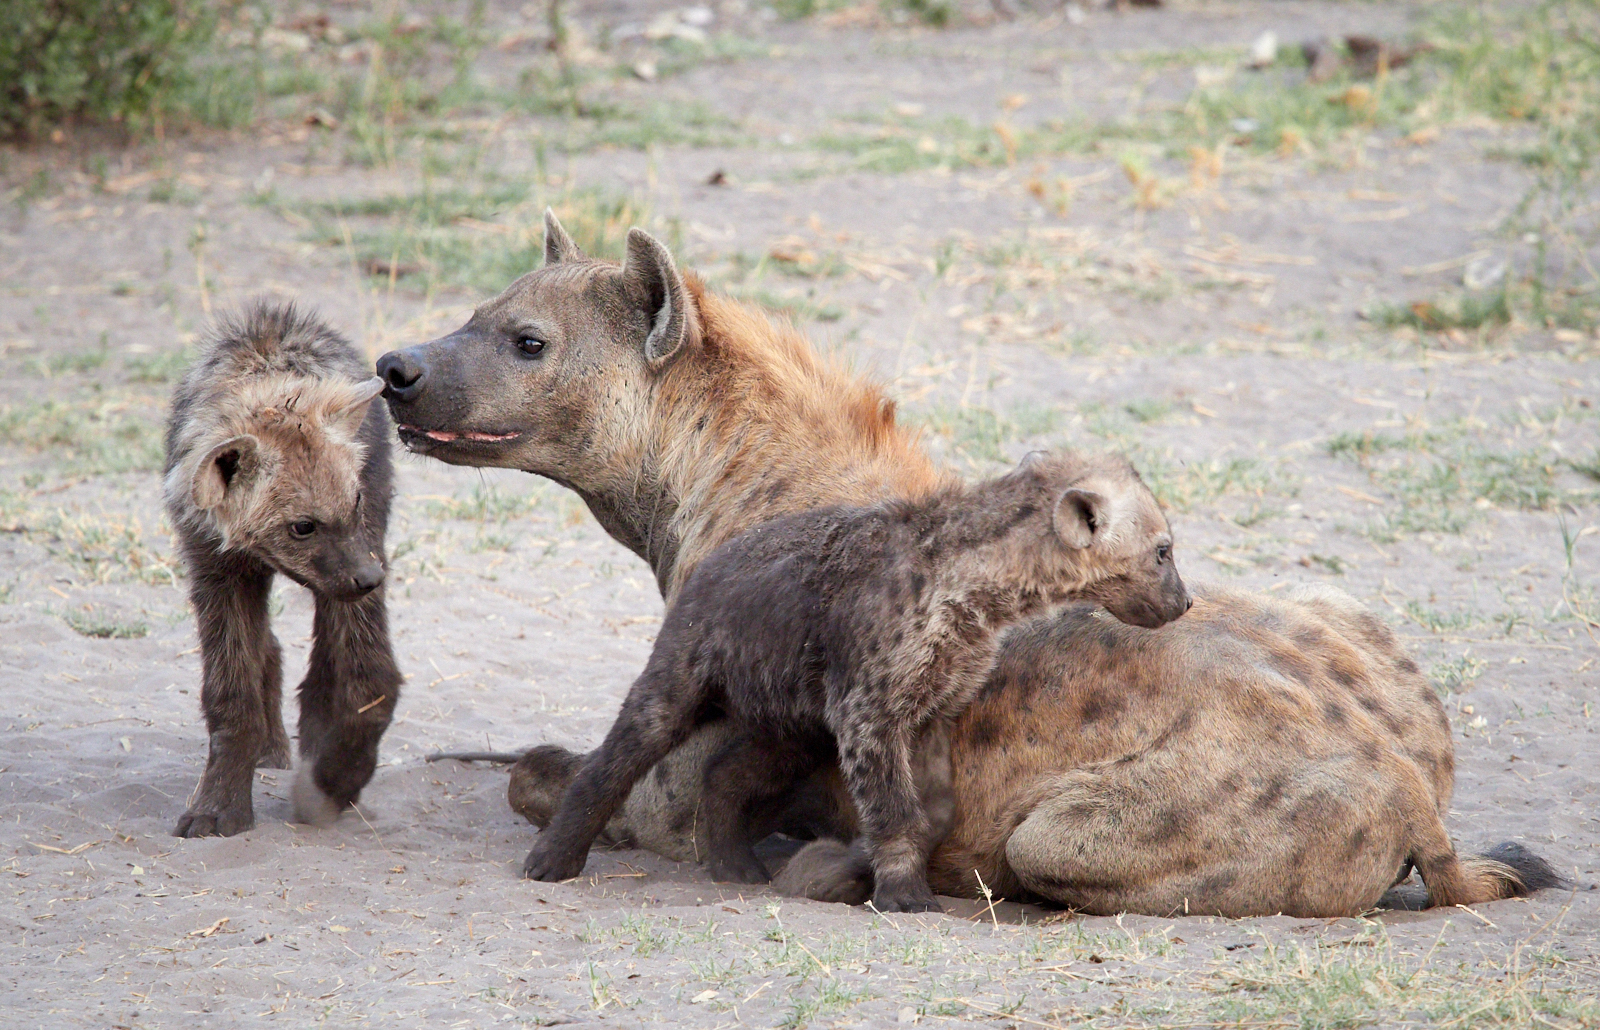 Young hyenas with mother 1600x1200 sRGB.jpg